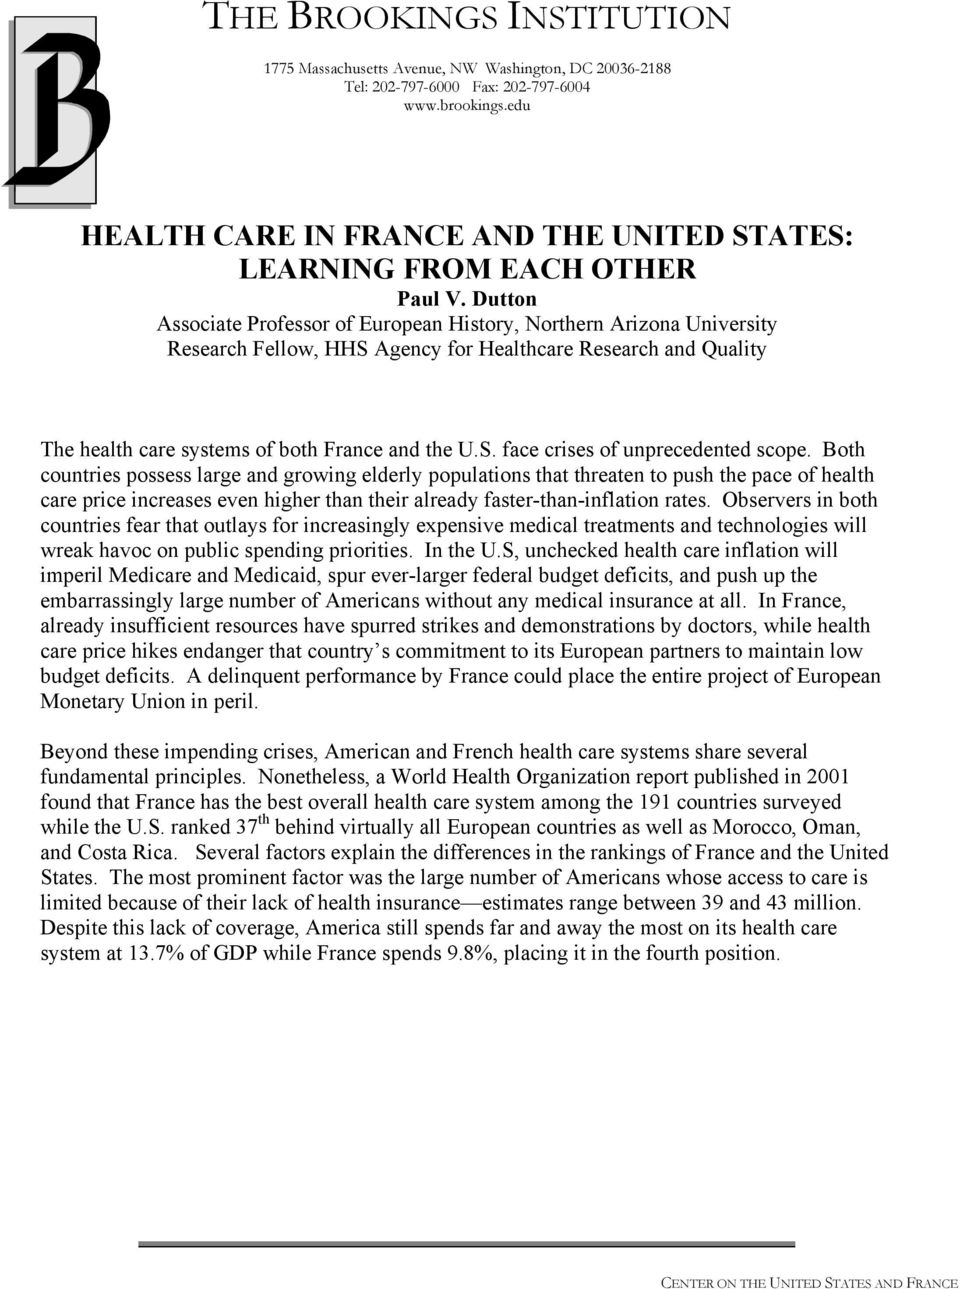 Dutton Associate Professor of European History, Northern Arizona University Research Fellow, HHS Agency for Healthcare Research and Quality The health care systems of both France and the U.S. face crises of unprecedented scope.